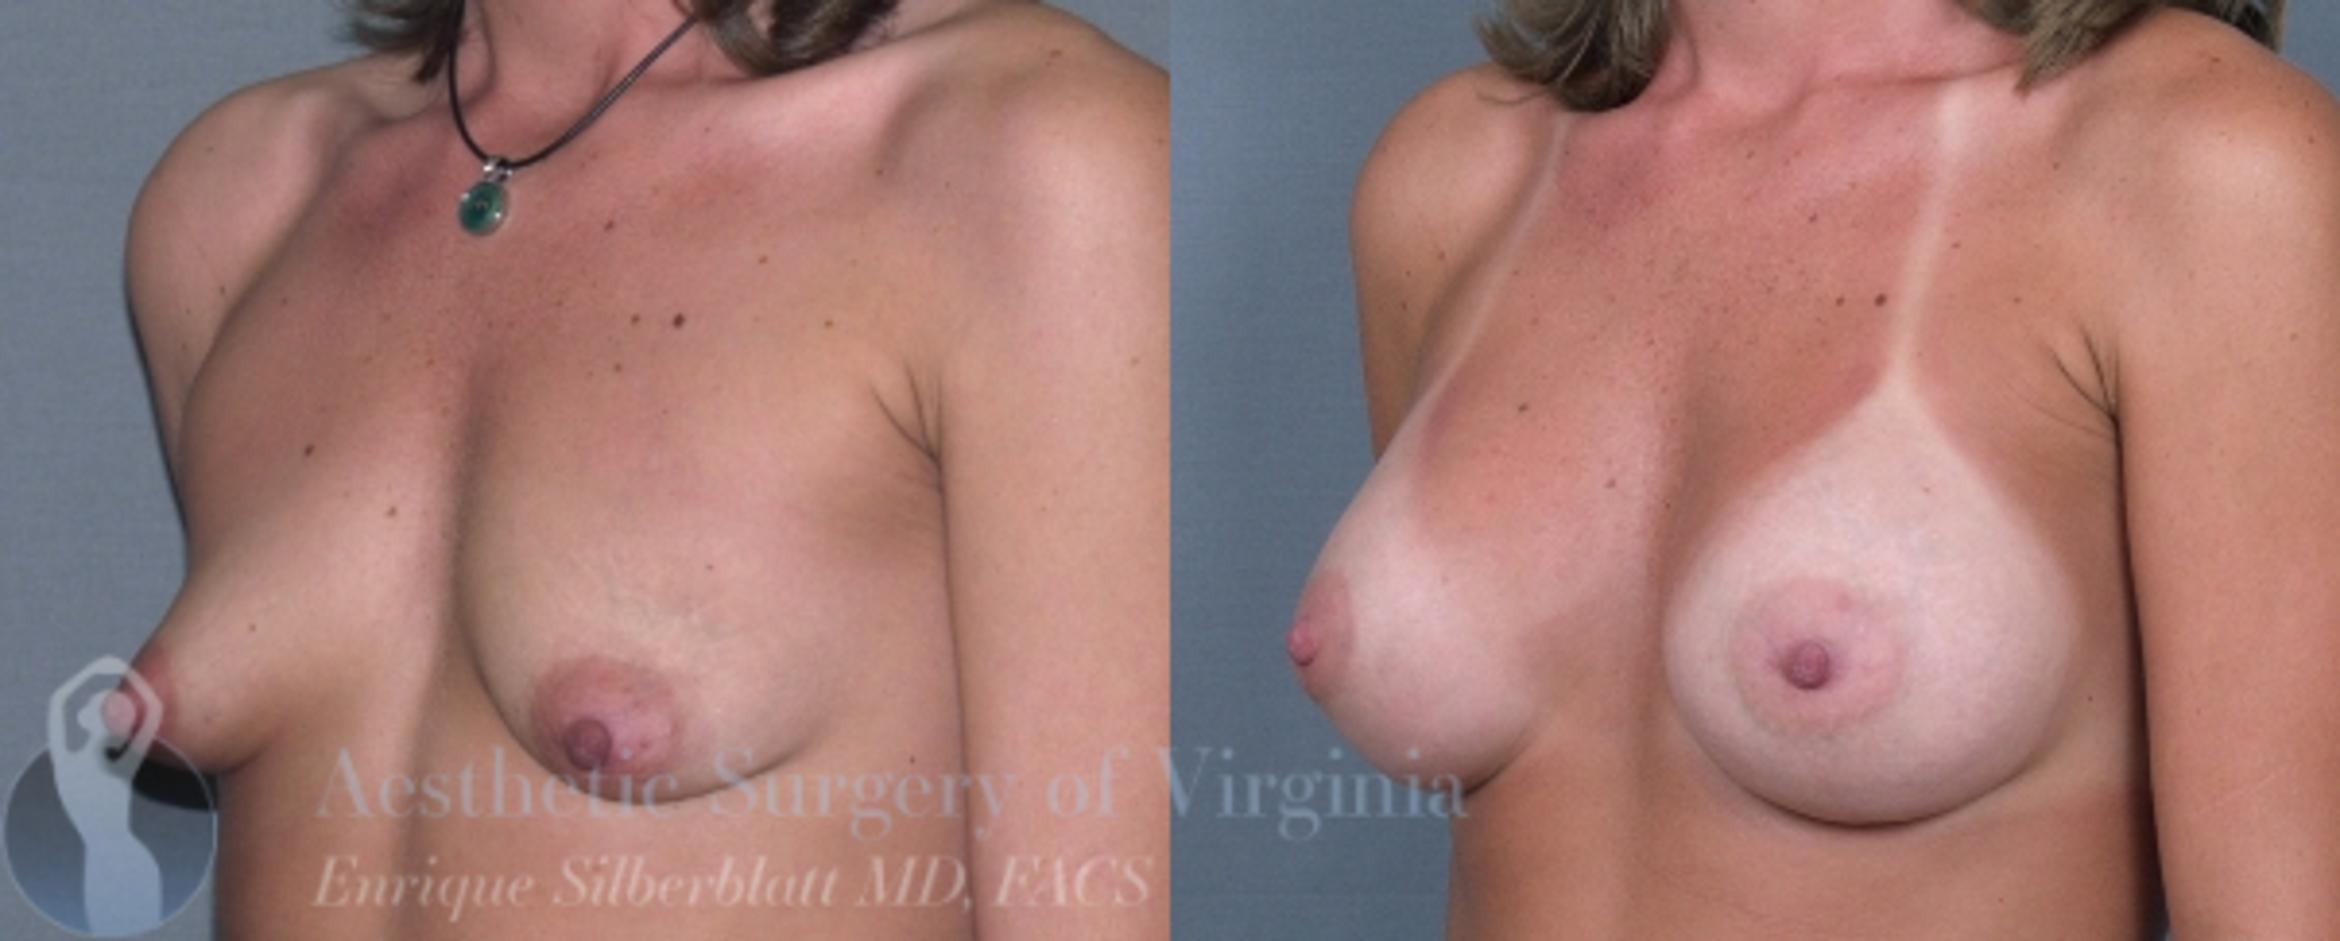 Breast Augmentation Case 4 Before & After View #2 | Roanoke, VA | Aesthetic Surgery of Virginia: Enrique Silberblatt, MD